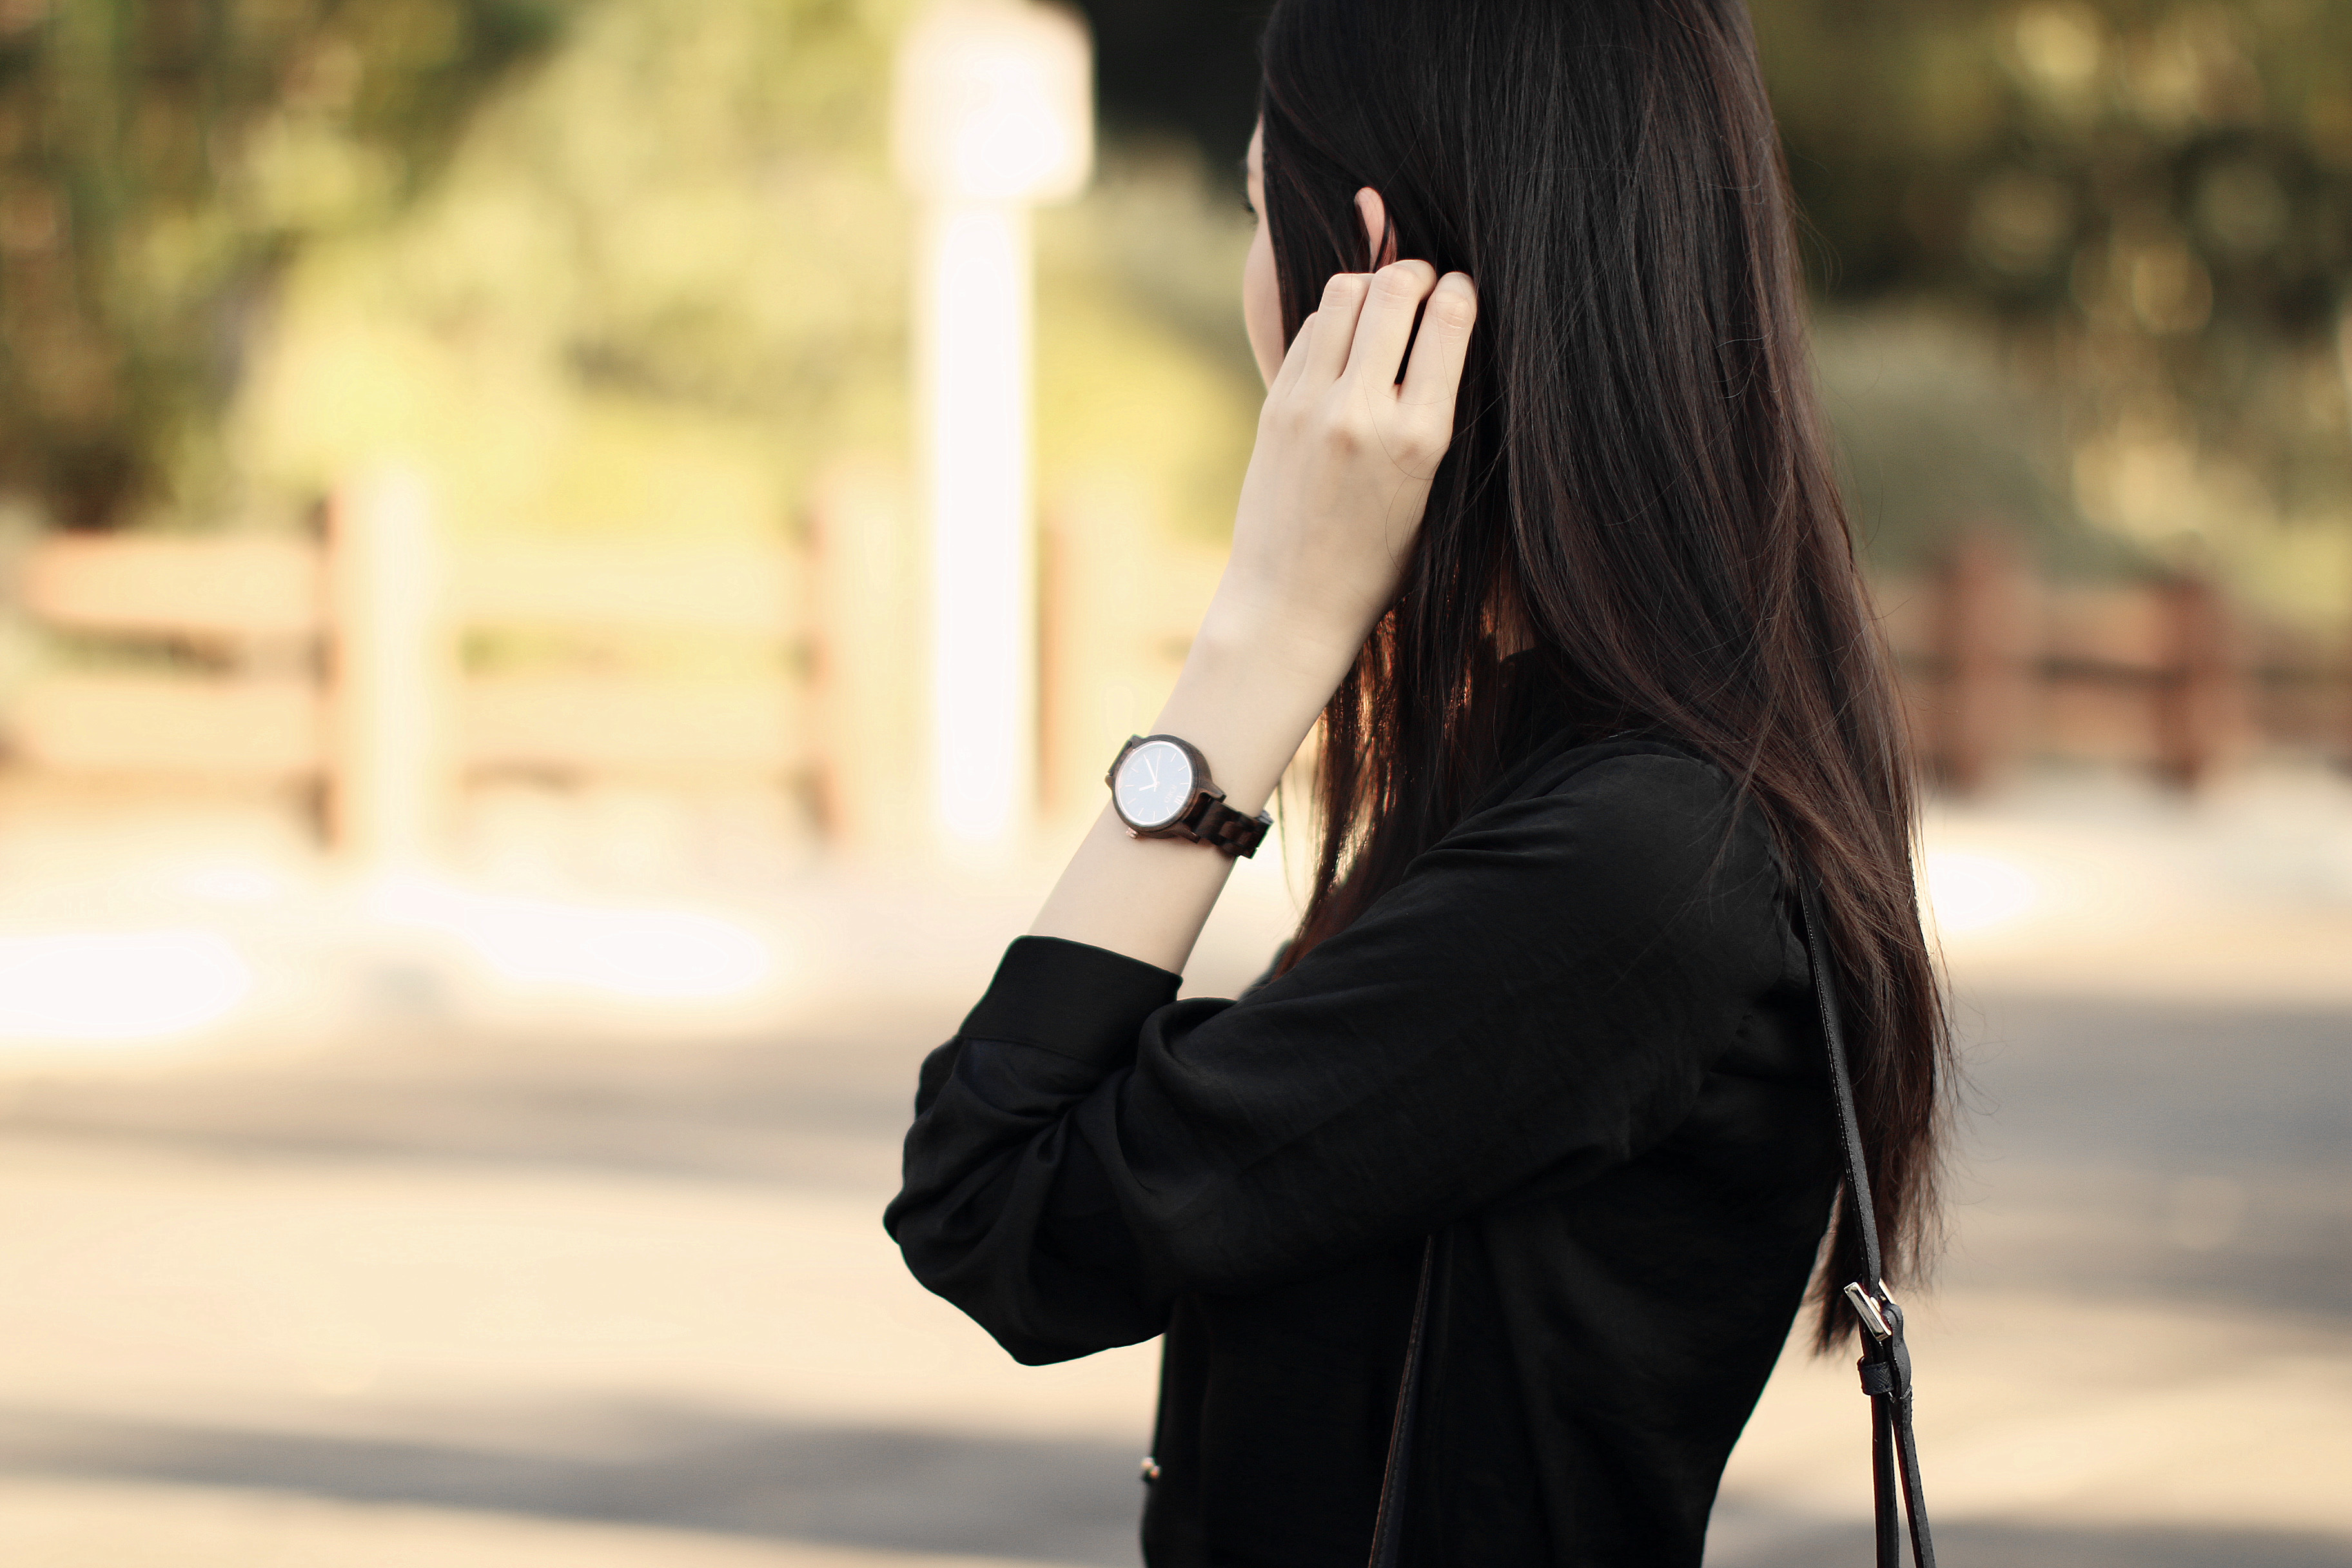 3686-ootd-fashion-style-outfitoftheday-wiwt-jord-jordwatches-watches-lifestyle-clothestoyouuu-elizabeeetht-flatlay